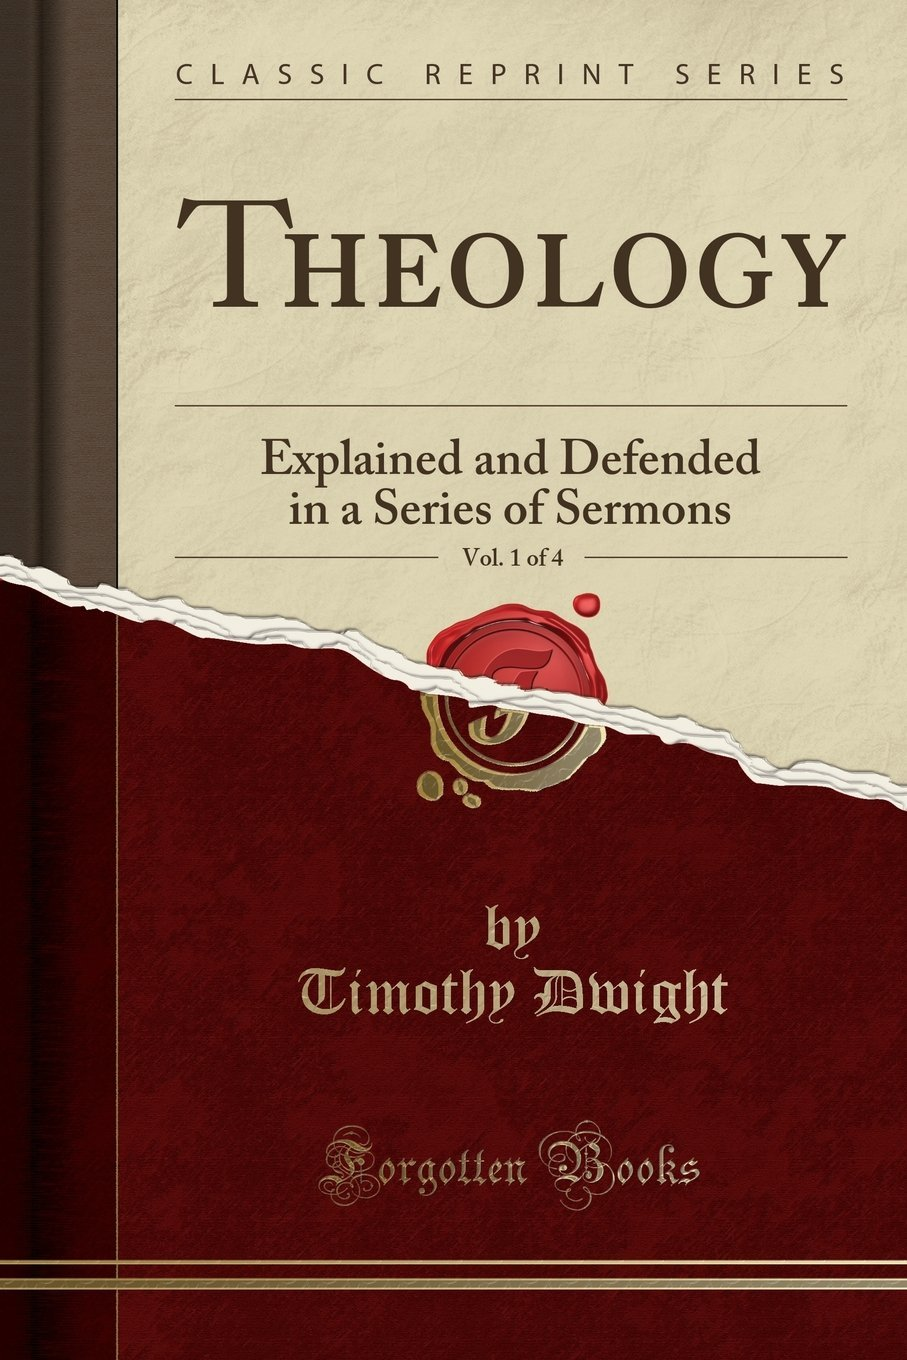 Theology, Vol. 1 of 4: Explained and Defended in a Series of Sermons (Classic Reprint) pdf